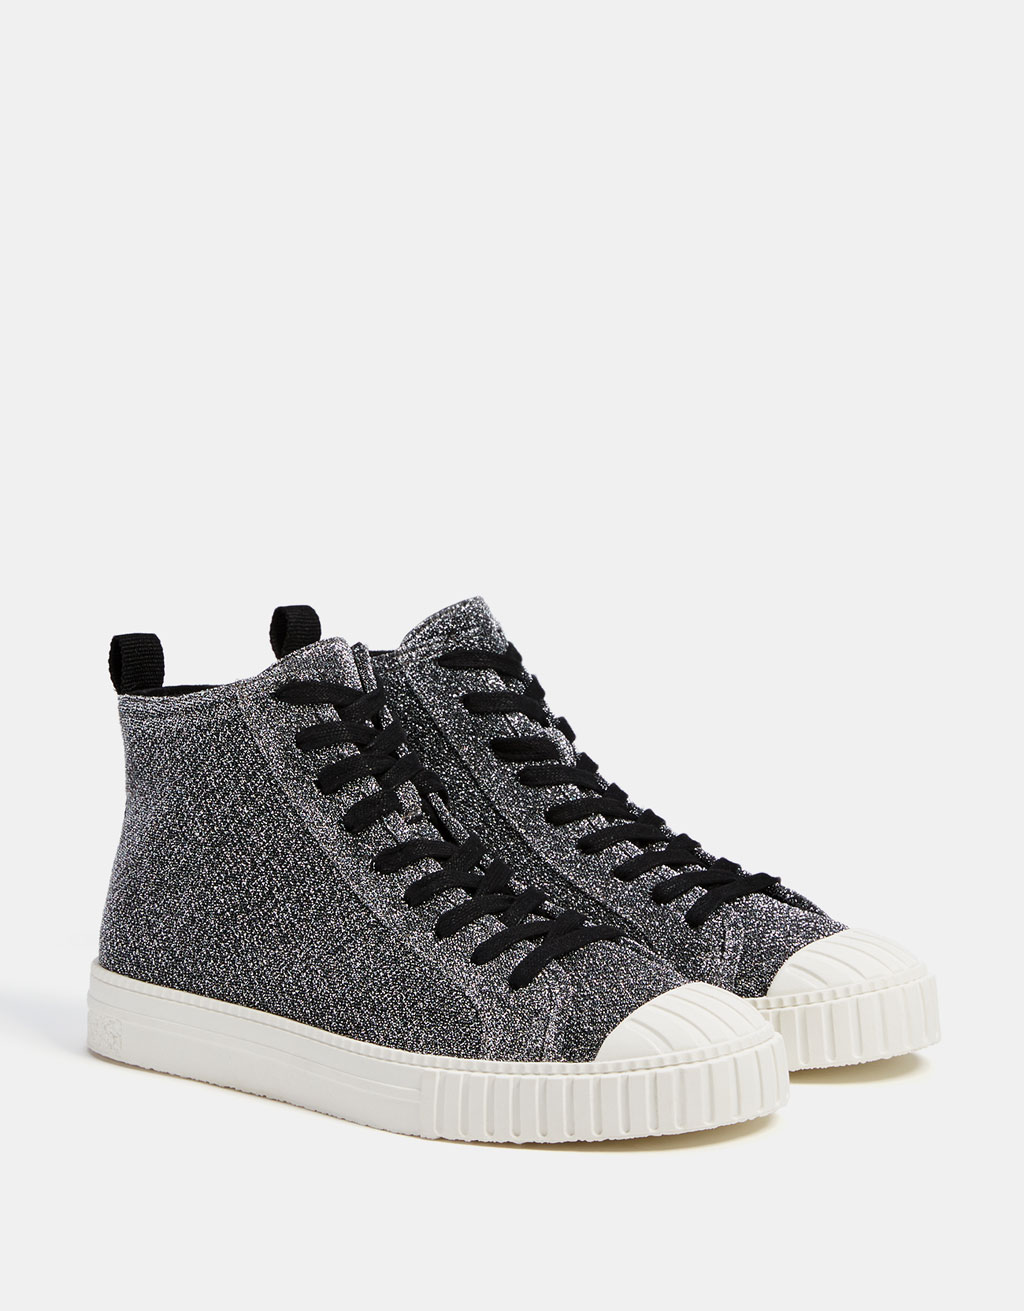 Glittery high top sneakers with rubber toe cap